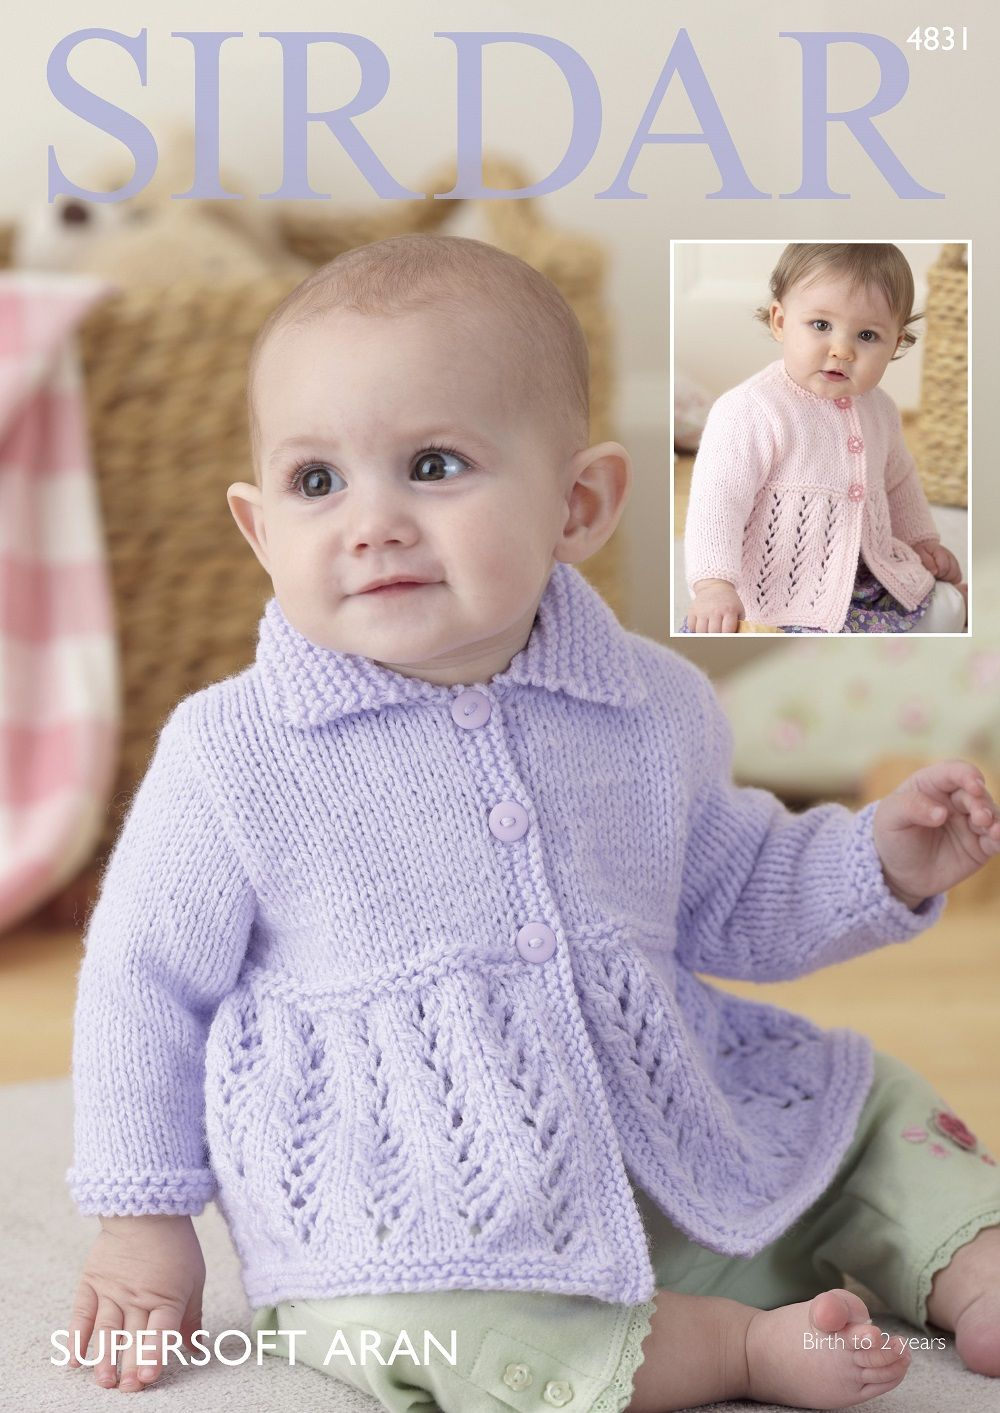 ebfef6f3dddf Sirdar Babies Cardigans Knitting pattern in Supersoft Aran 4831P PDF